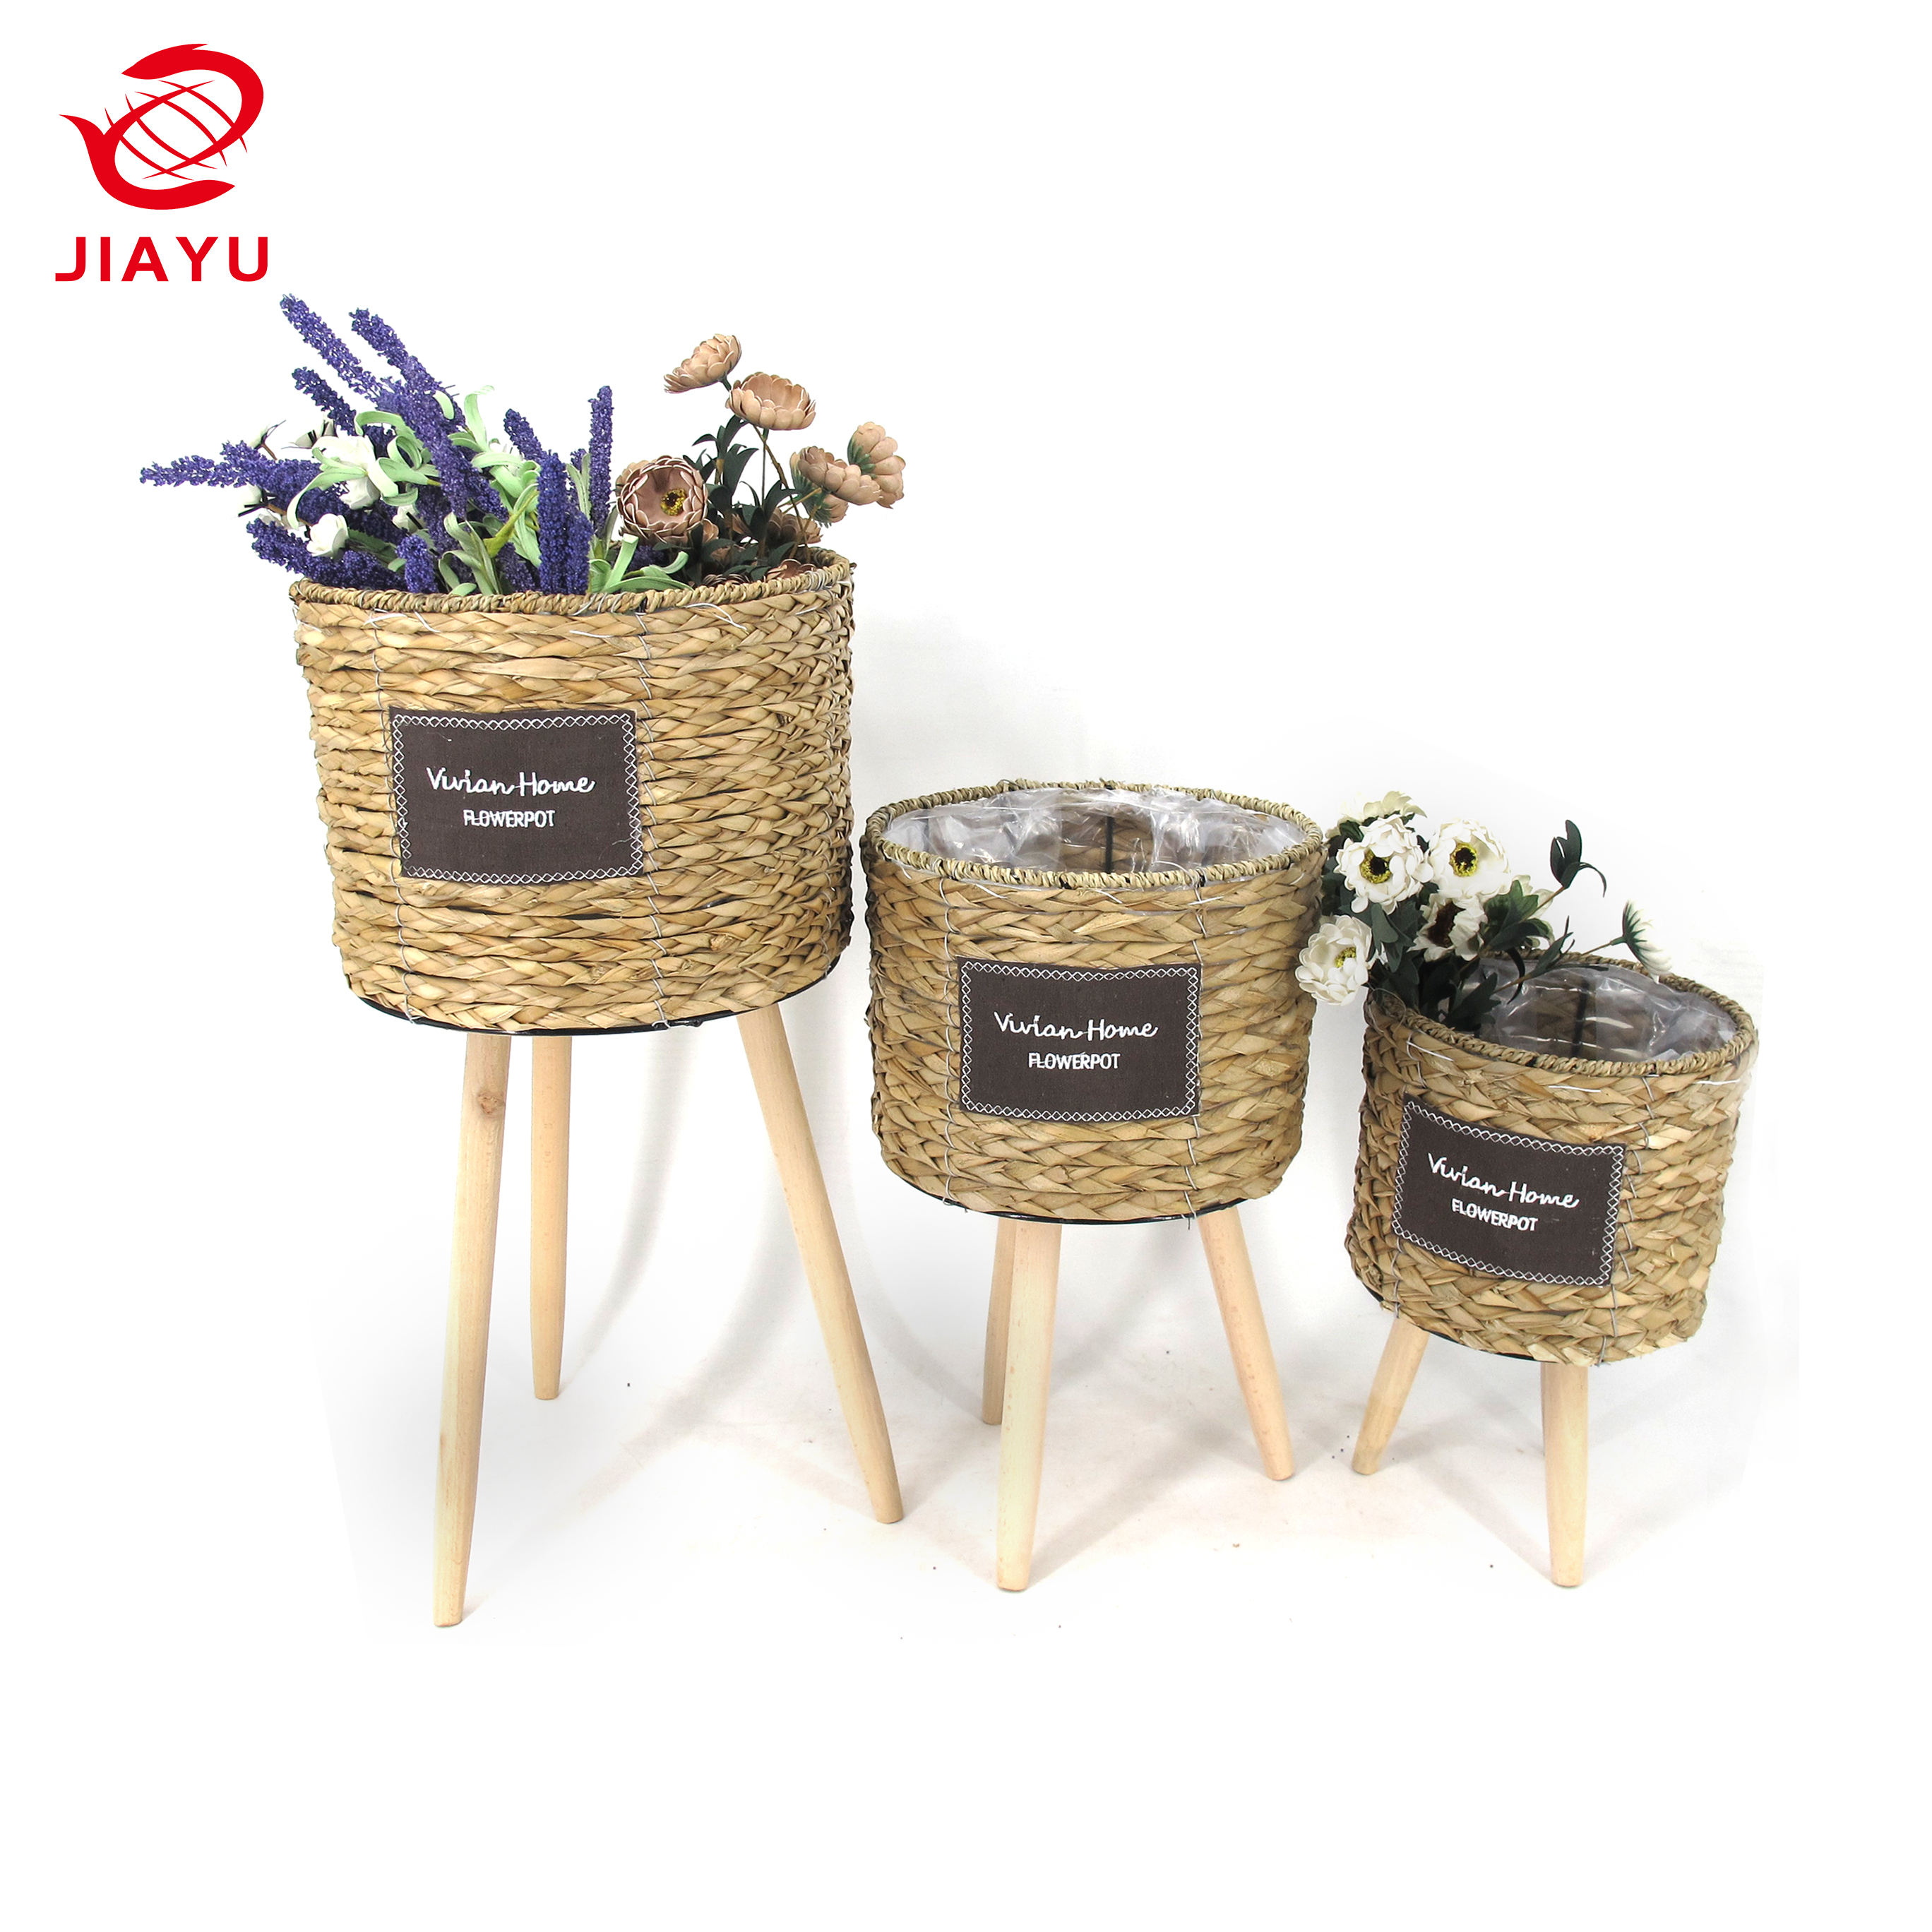 10% Off! Water Hyacinth Basket Hyacinth Storage Flower Basket